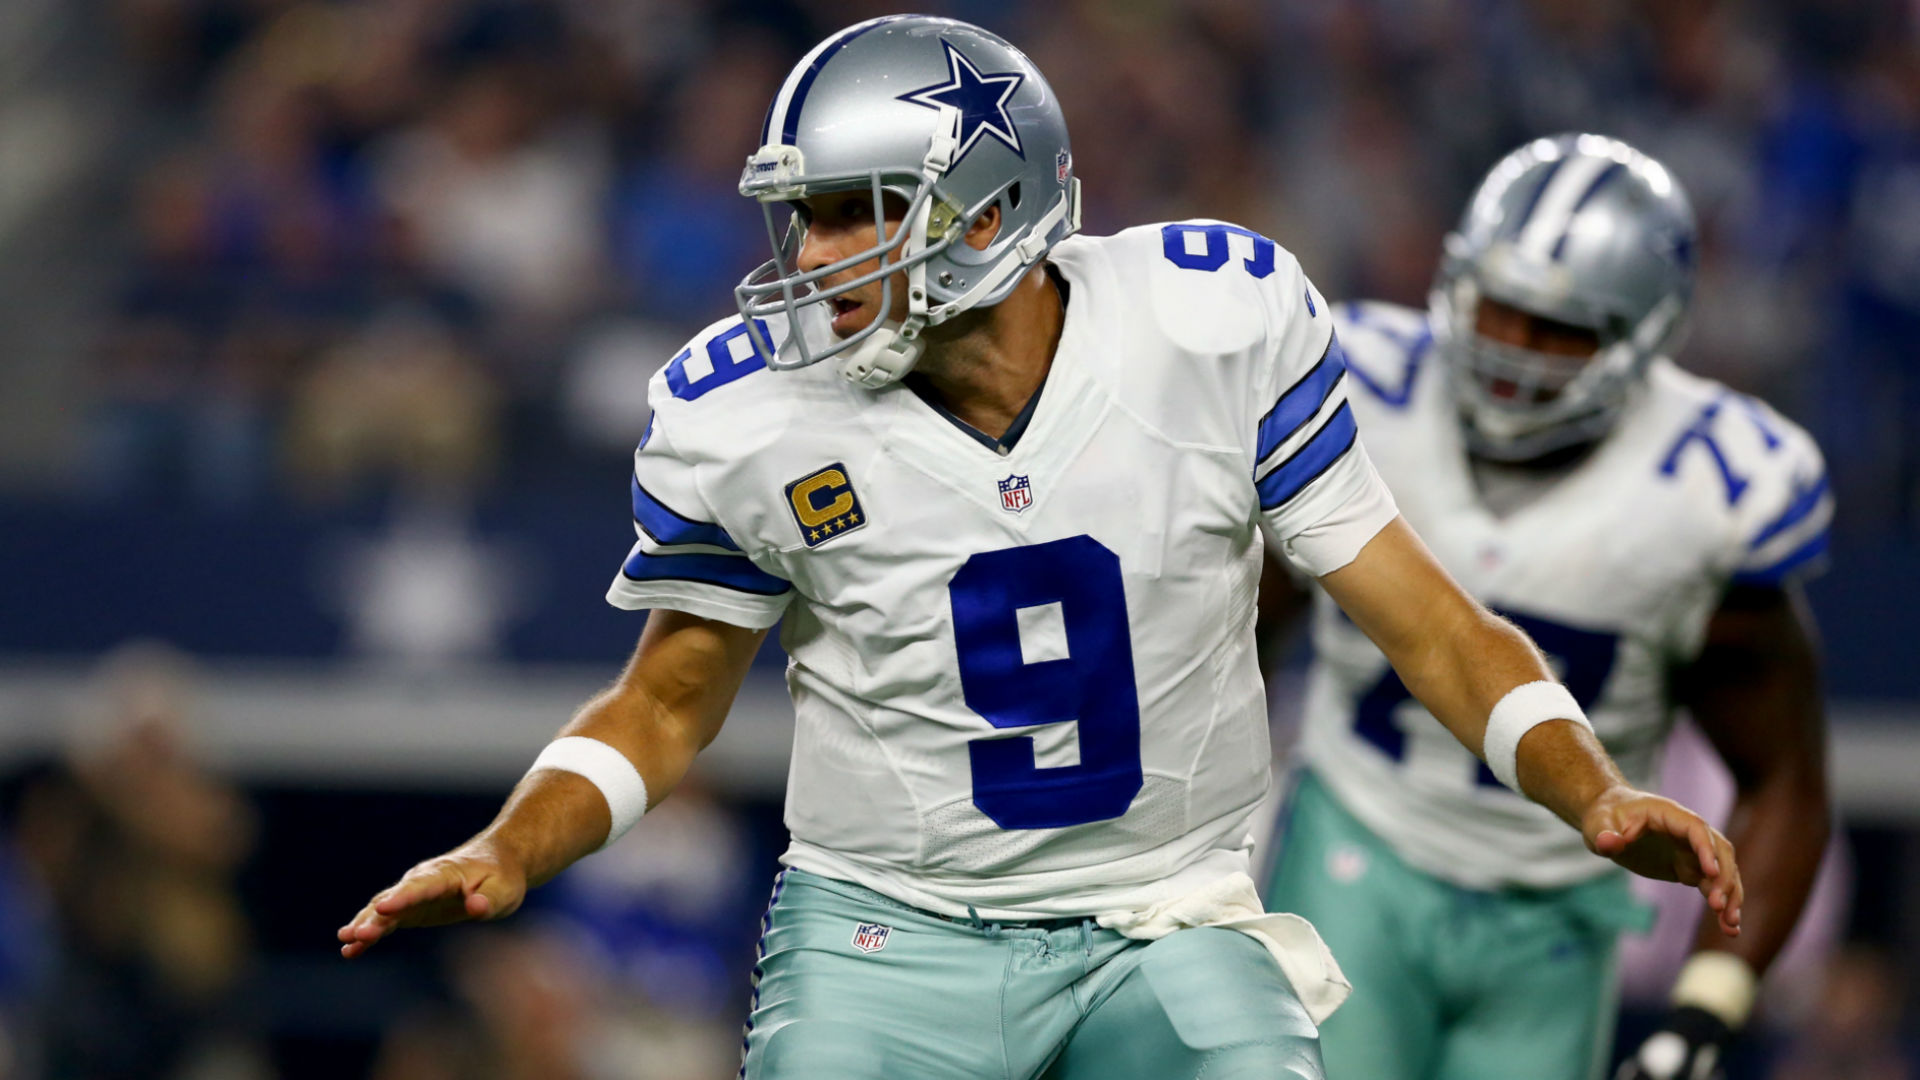 Romo-Tony-091315-USNews-Getty-FTR